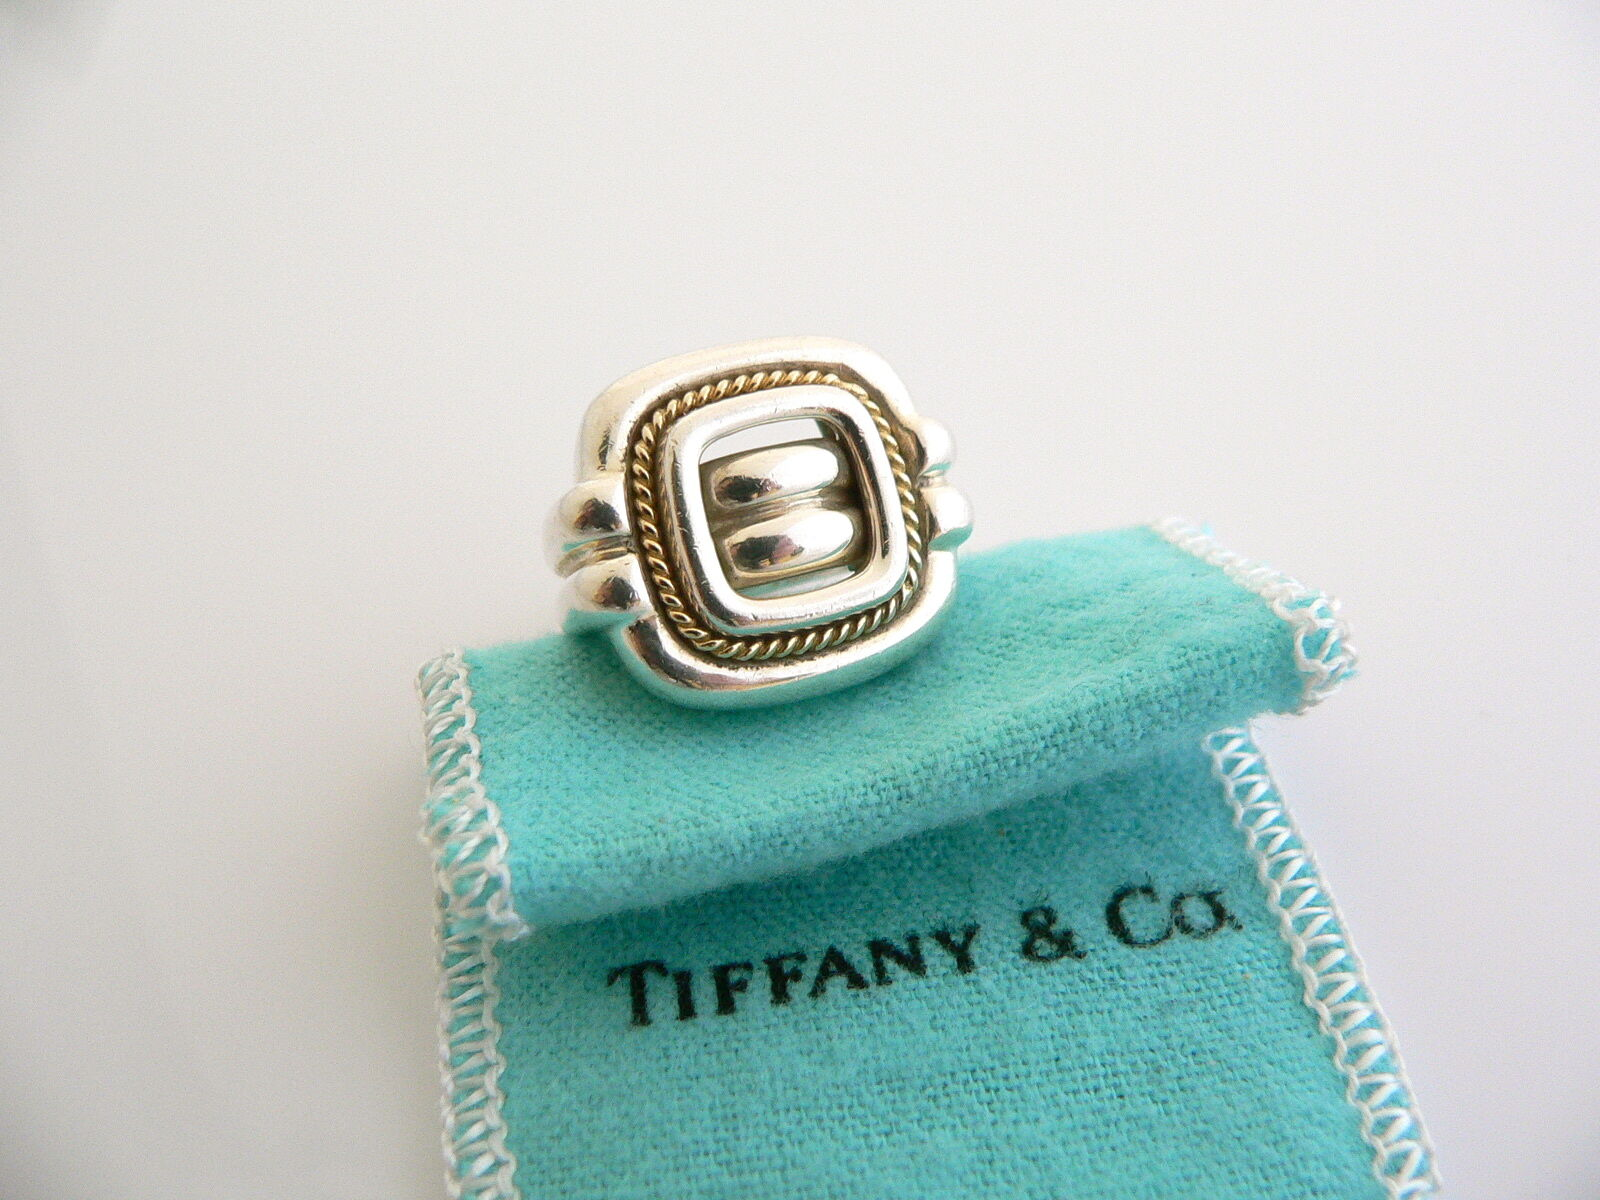 Tiffany & Co Silver 18K Gold Rope Square Ring Band 6 Rare Gift Pouch Love